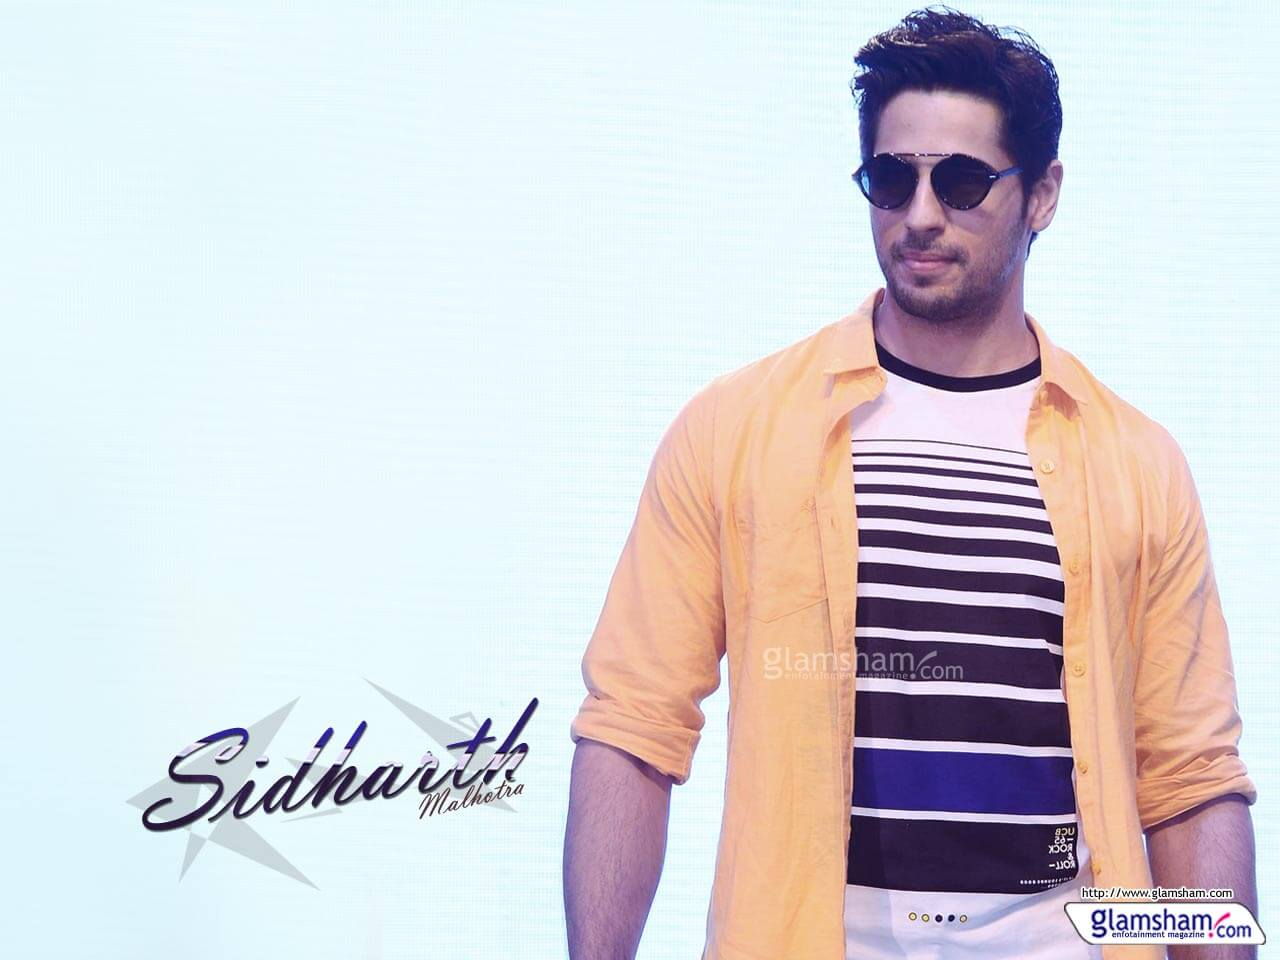 Sidharth Malhotra Movies, Height, Age, Photos, Birth Date, Biography, Girlfriend, Family, Hairstyle, Education, Details, Net Worth, Awards, Wiki, Instagram, Facebook, Imdb, Twitter (56)